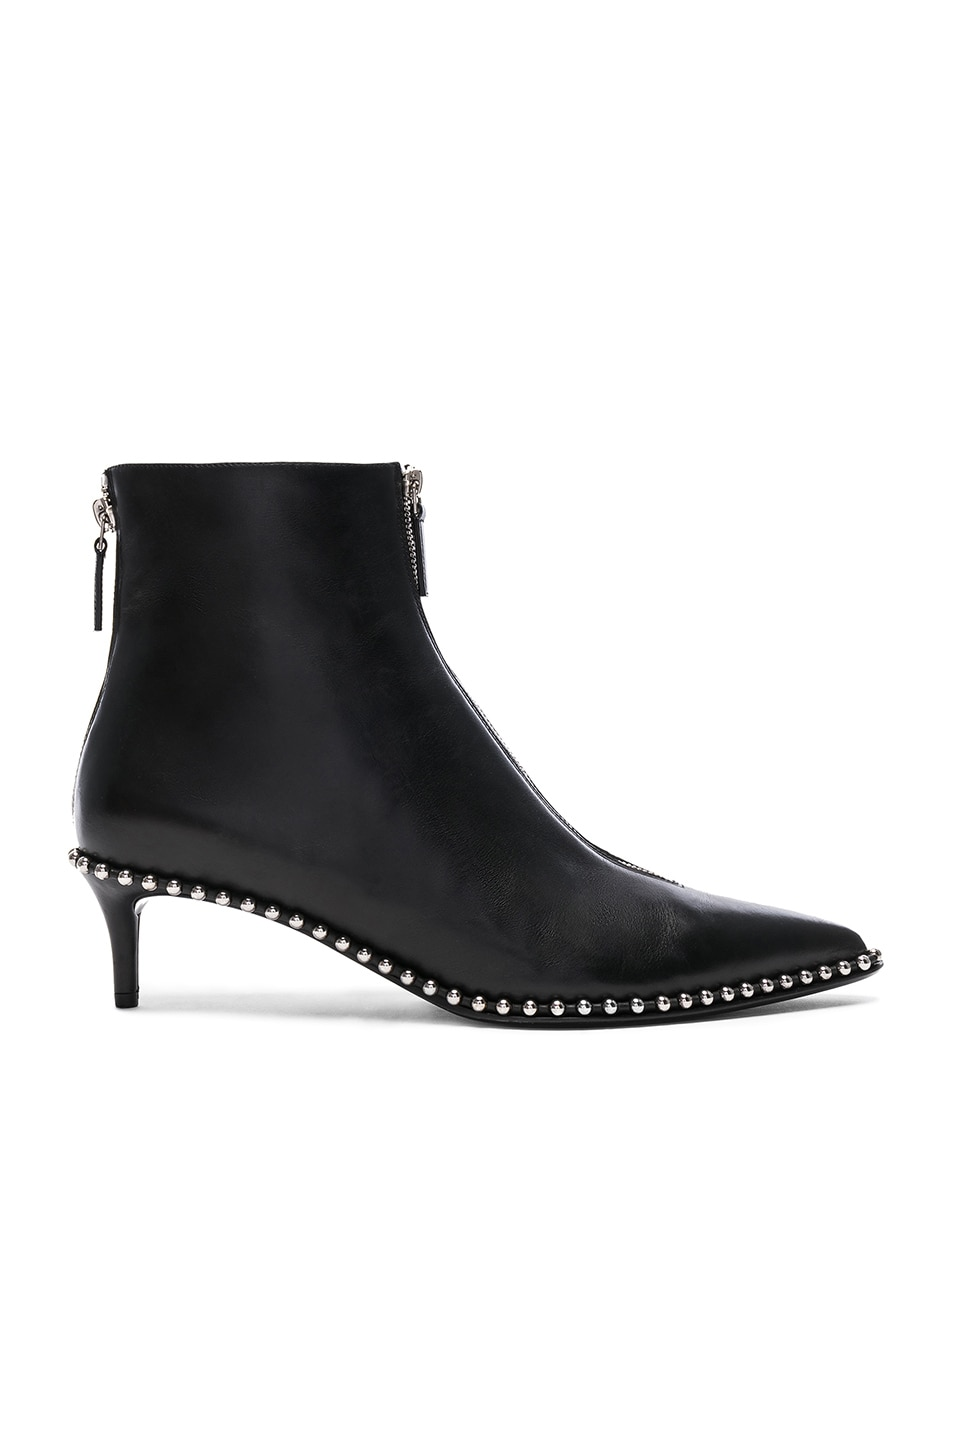 Image 1 of Alexander Wang Leather Eri Low Boots in Black